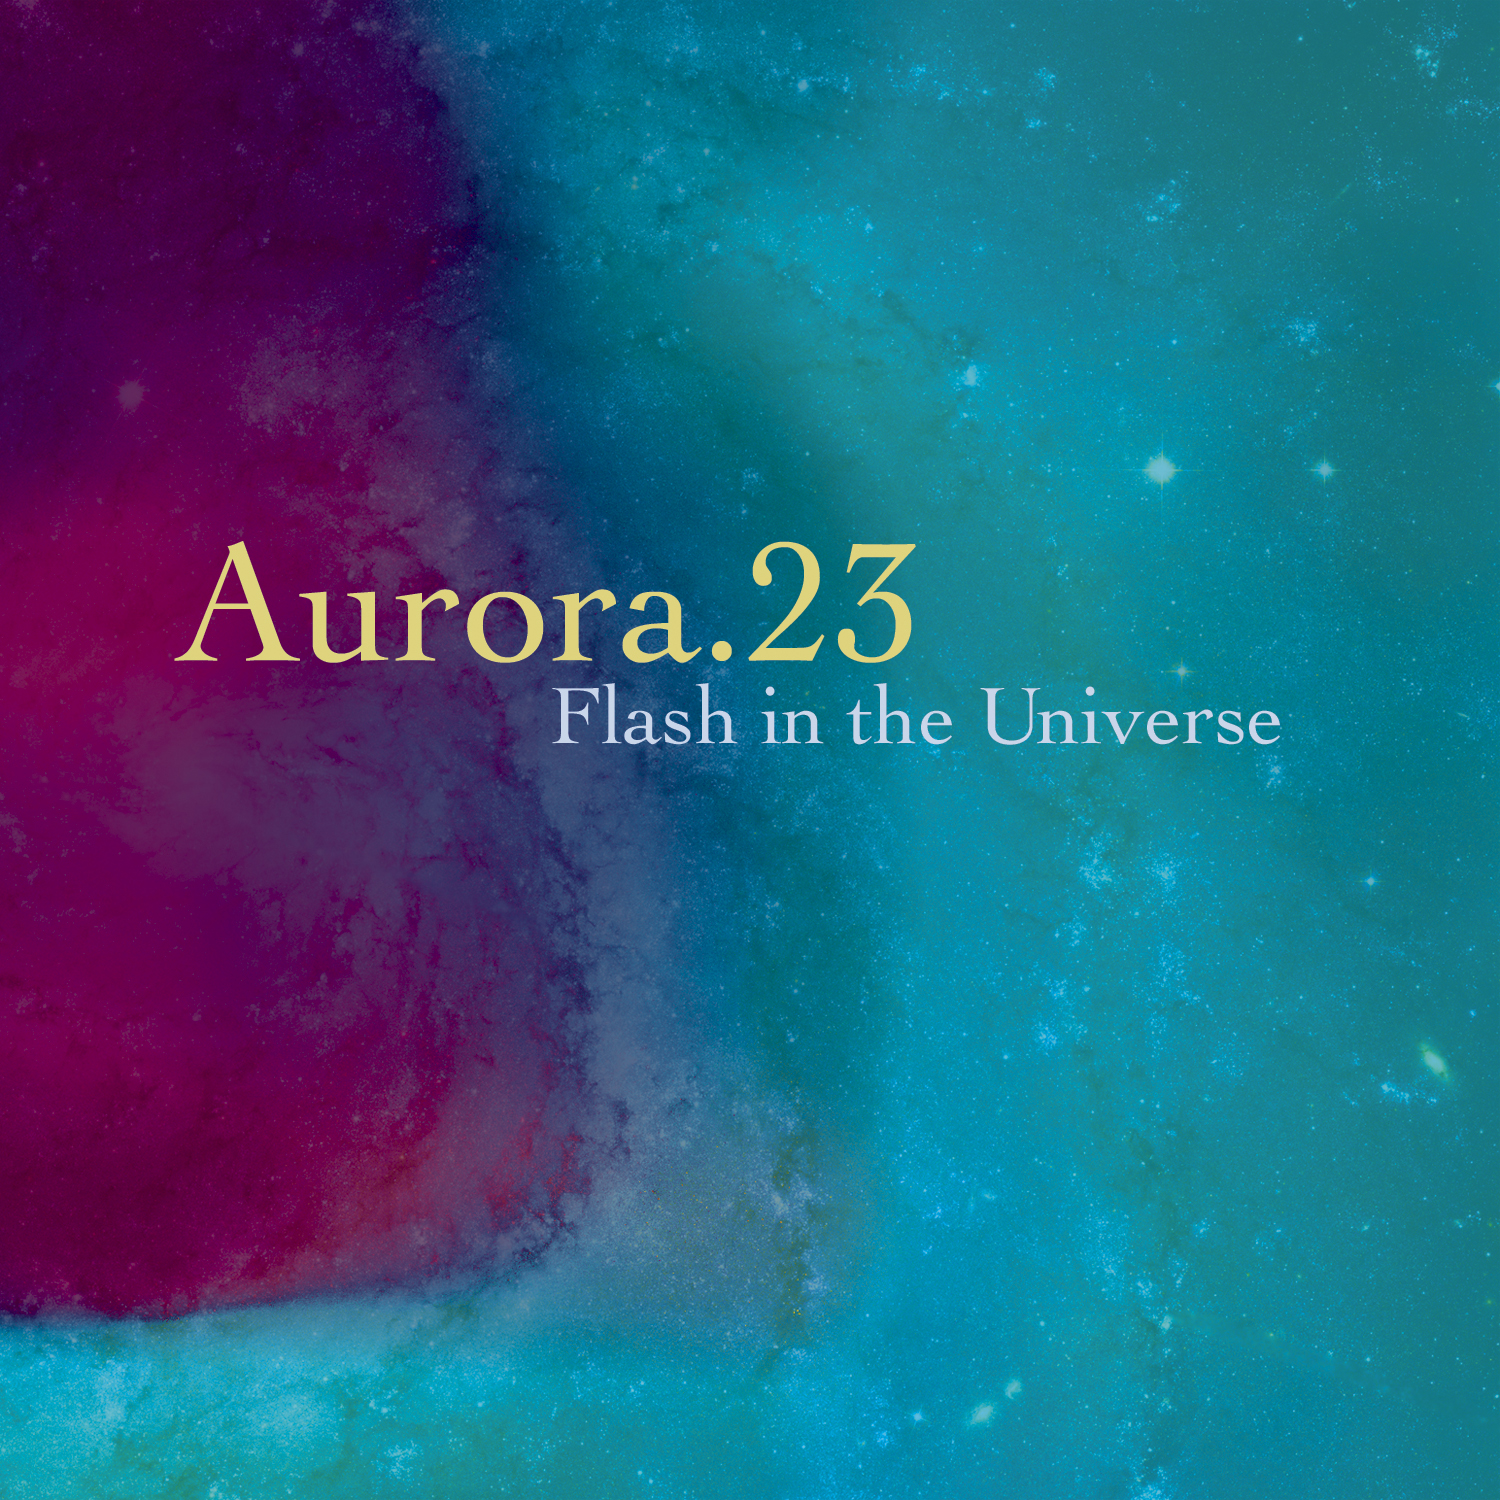 Aurora.23, Flash In The Universe